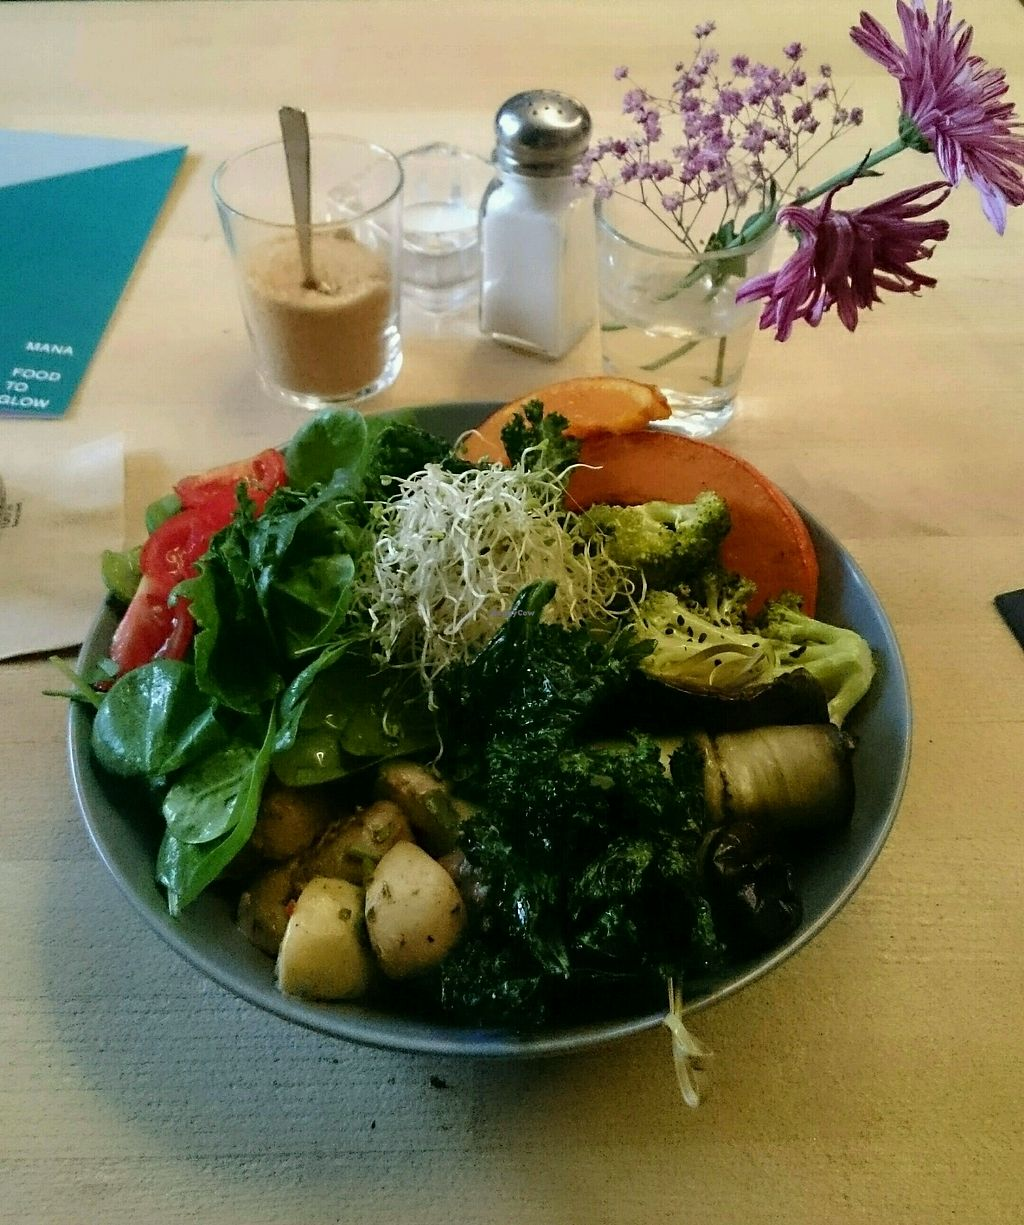 """Photo of Manafood  by <a href=""""/members/profile/JudithPretzsch"""">JudithPretzsch</a> <br/>Keeping up with the kale  <br/> October 17, 2017  - <a href='/contact/abuse/image/102480/316097'>Report</a>"""